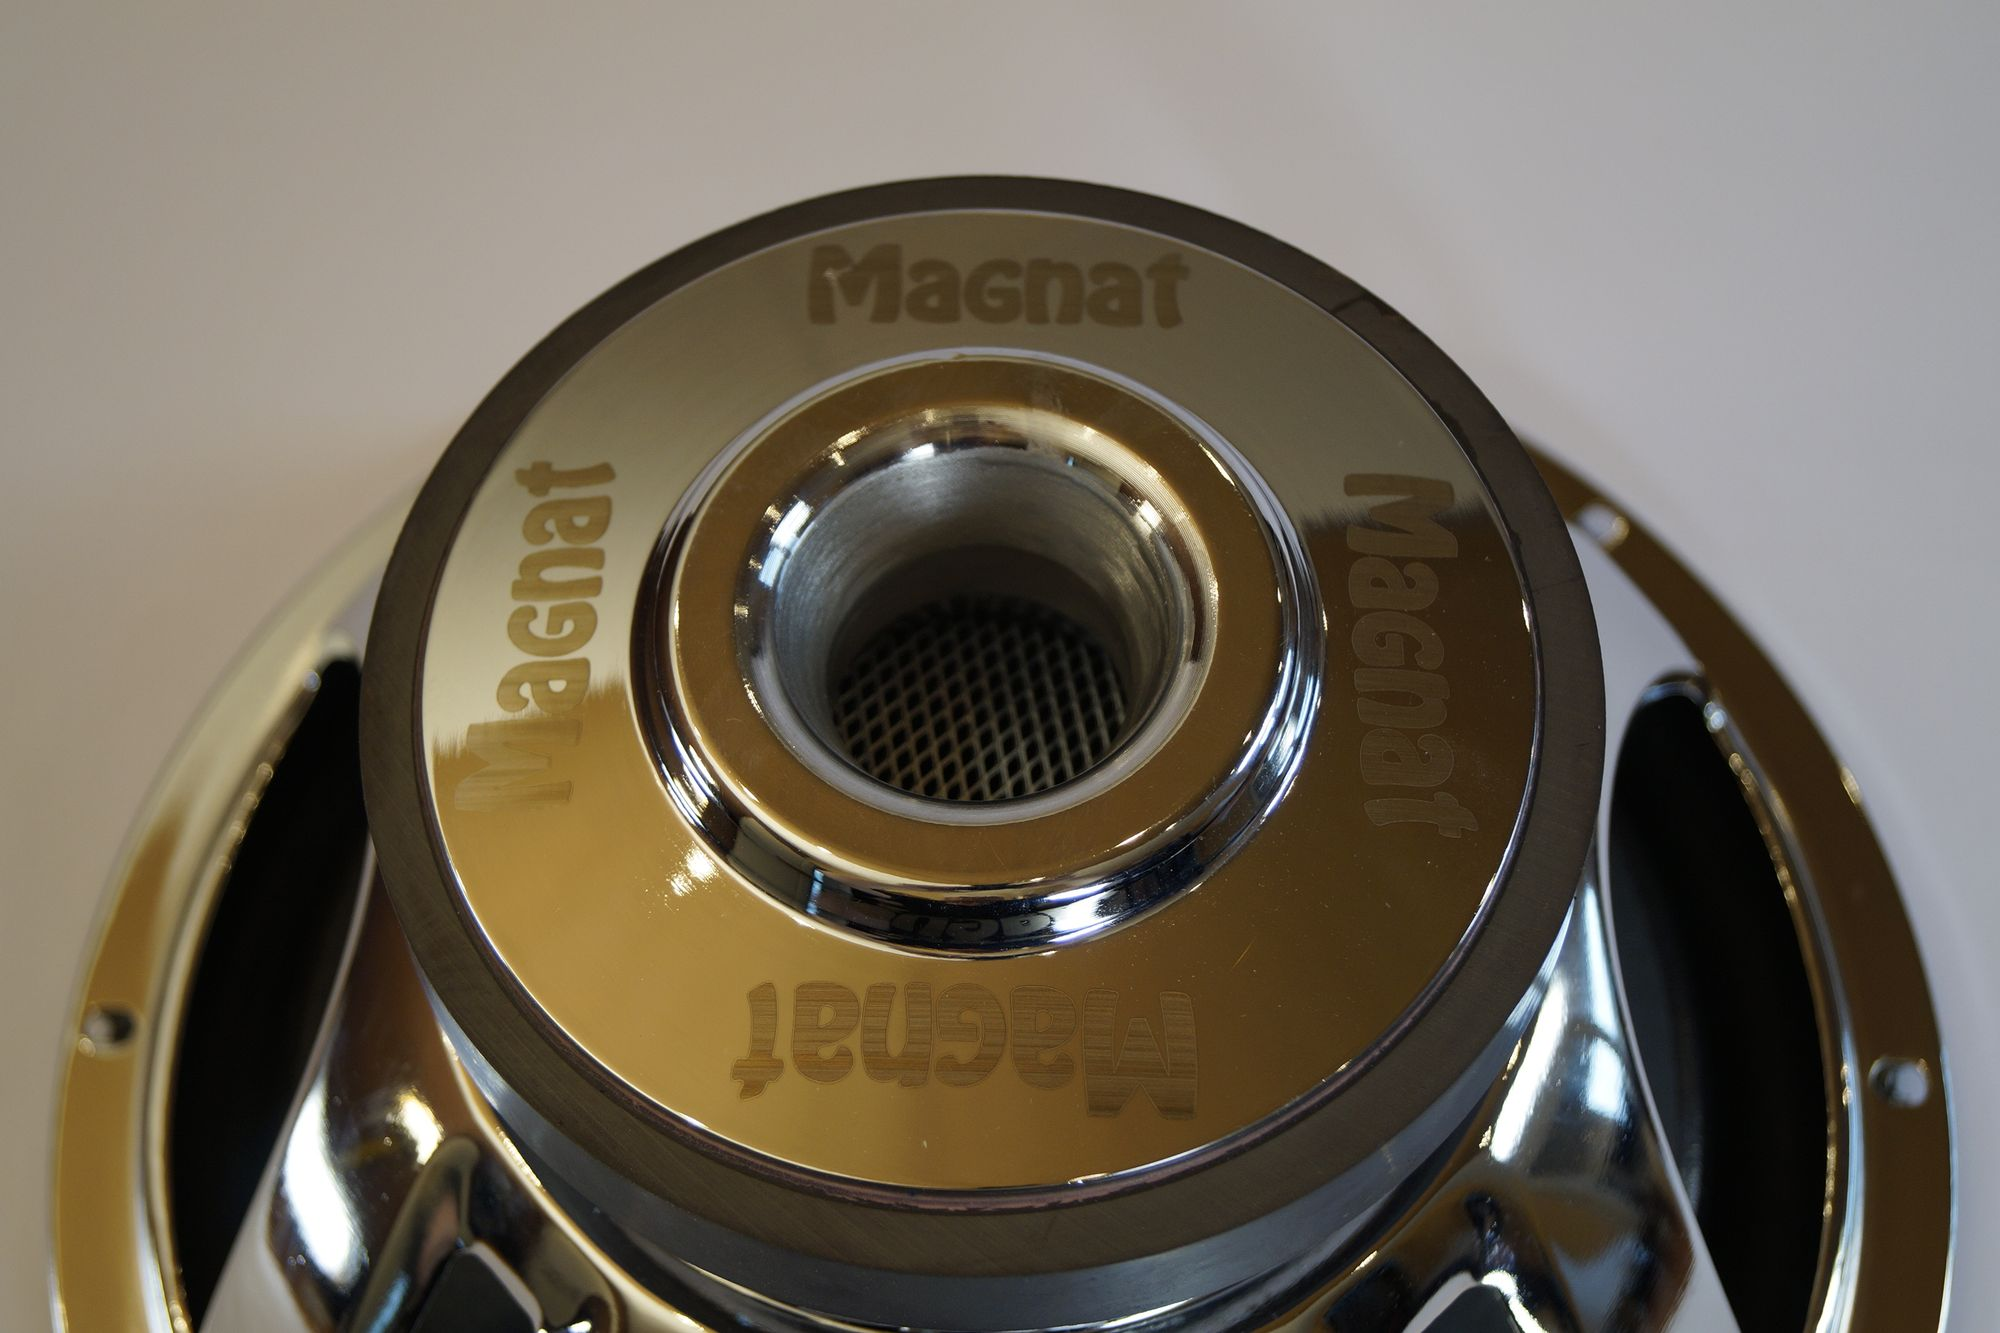 Magnat Transforce Reference 130 Tieftöner Subwoofer Basslautsprecher, 1000 Watt max., NEU – Bild 5